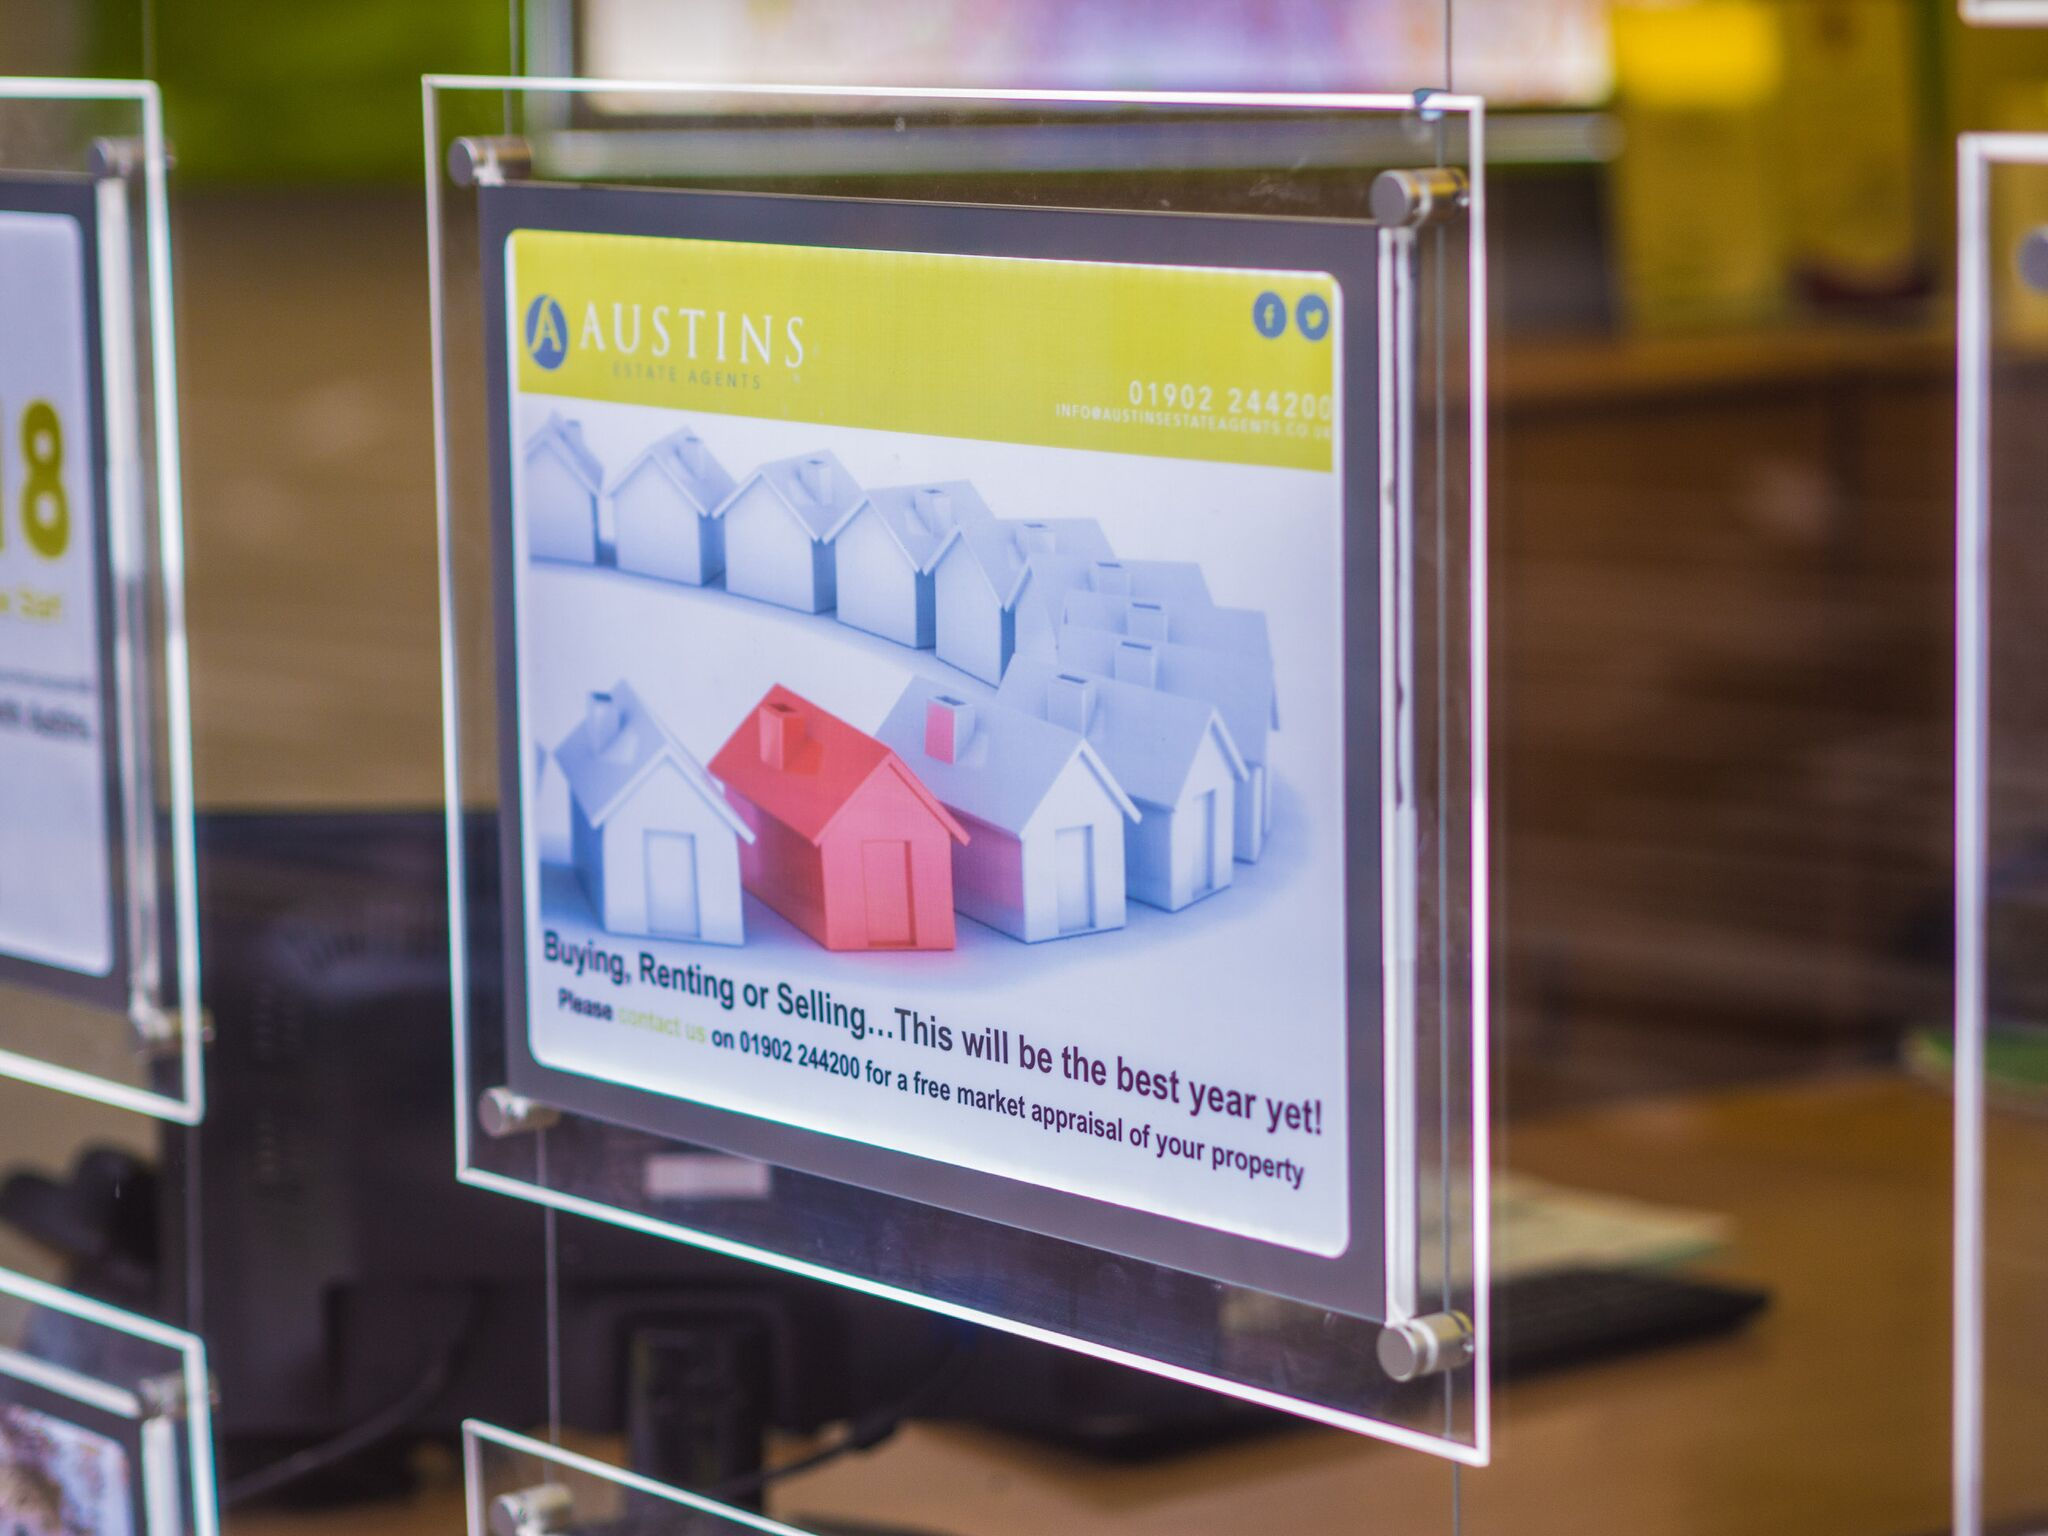 Promotional Image - Austins Estate Agents